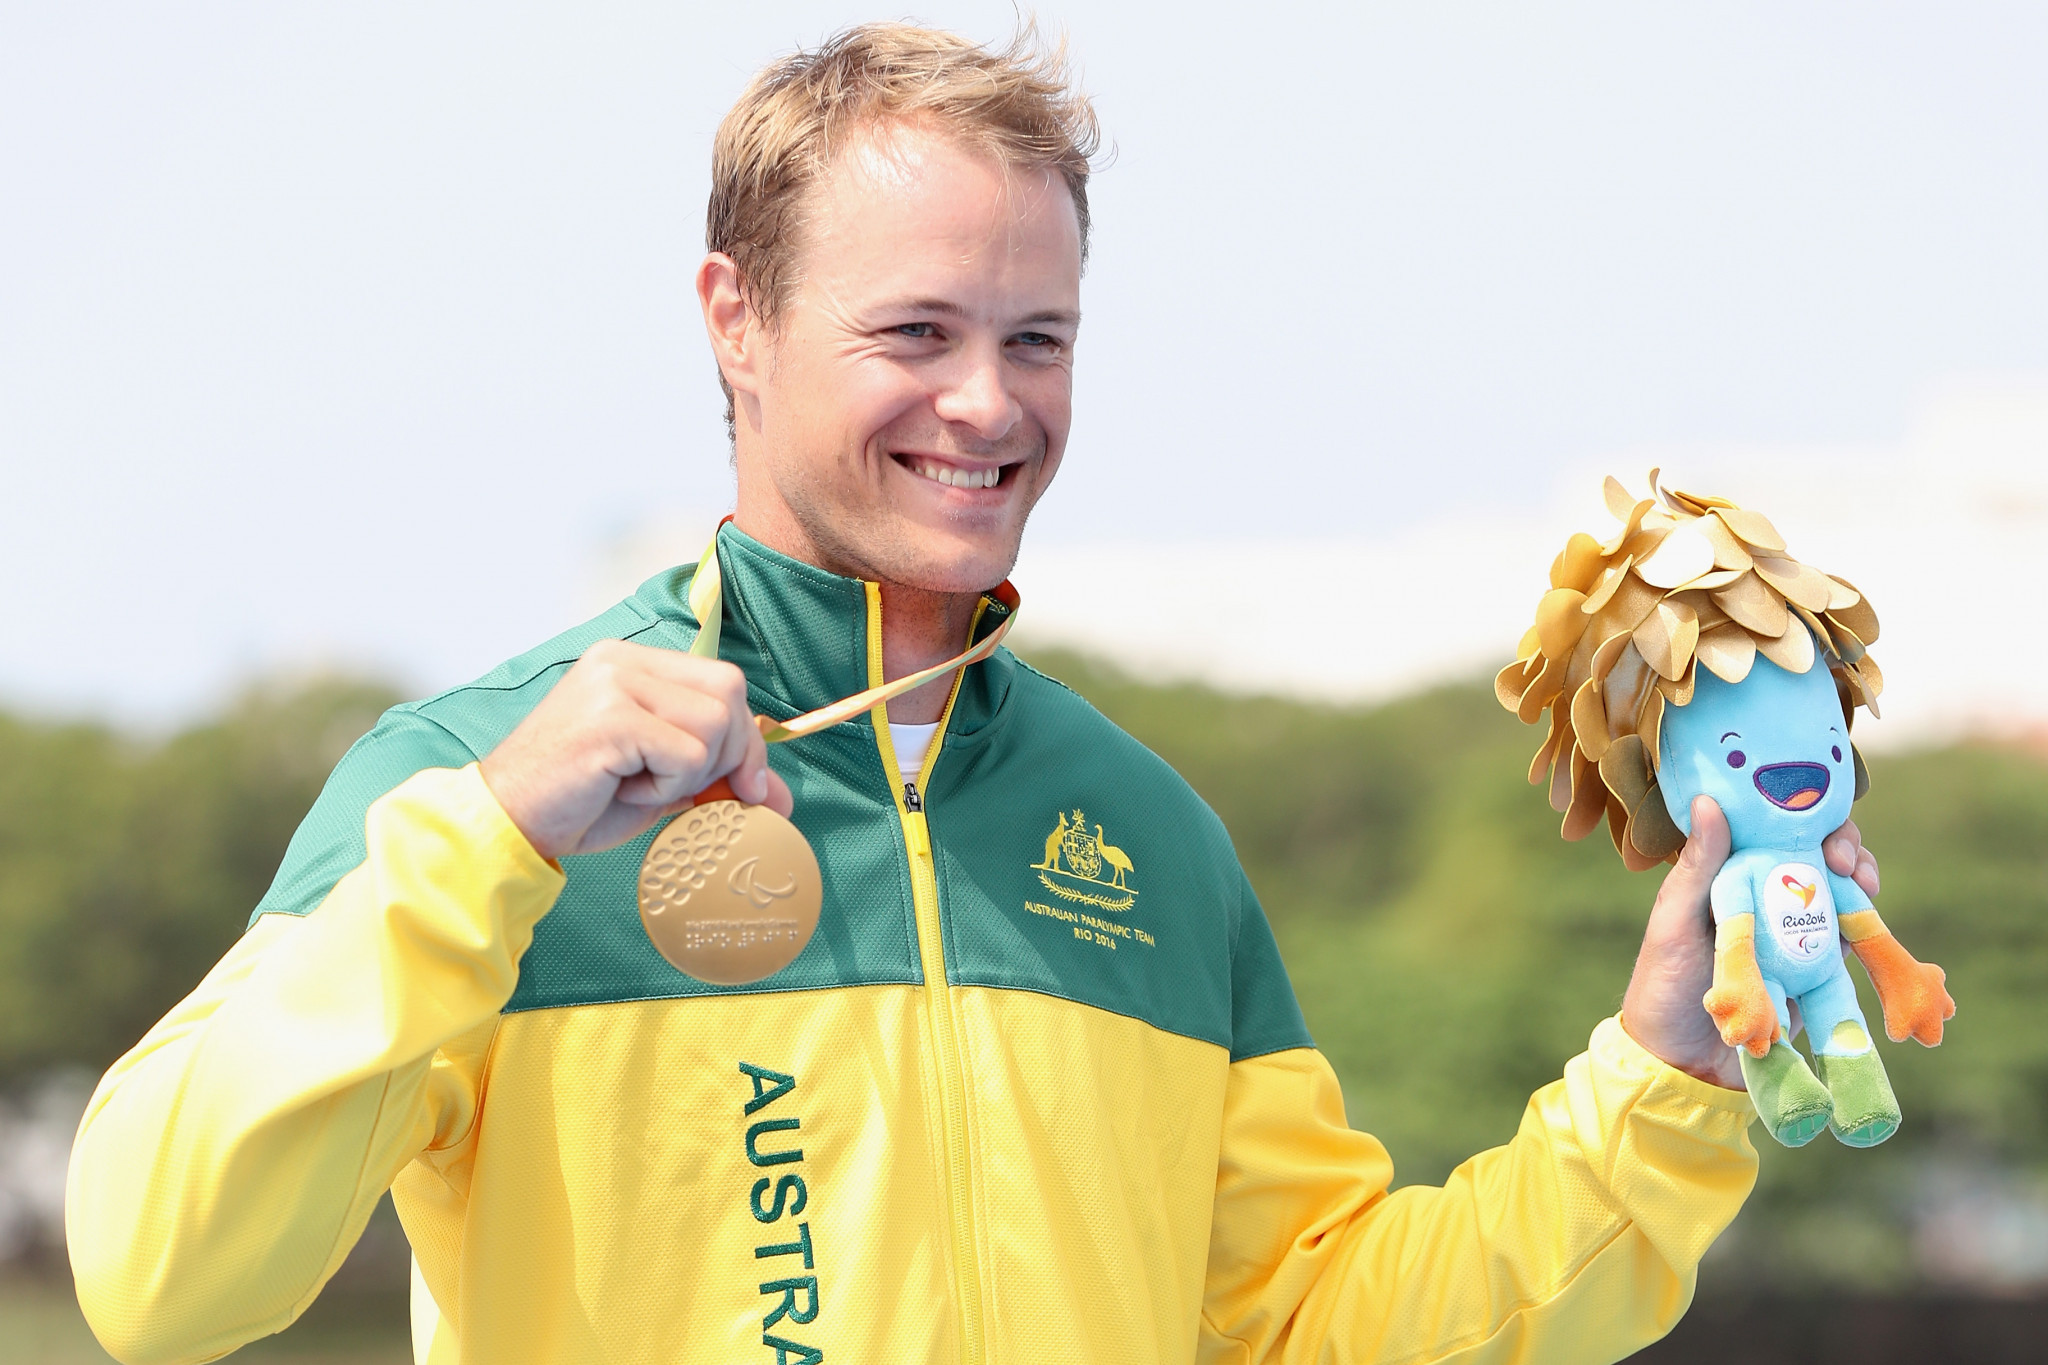 Rio 2016 Para-canoe champion Curtis McGrath claimed it would be a